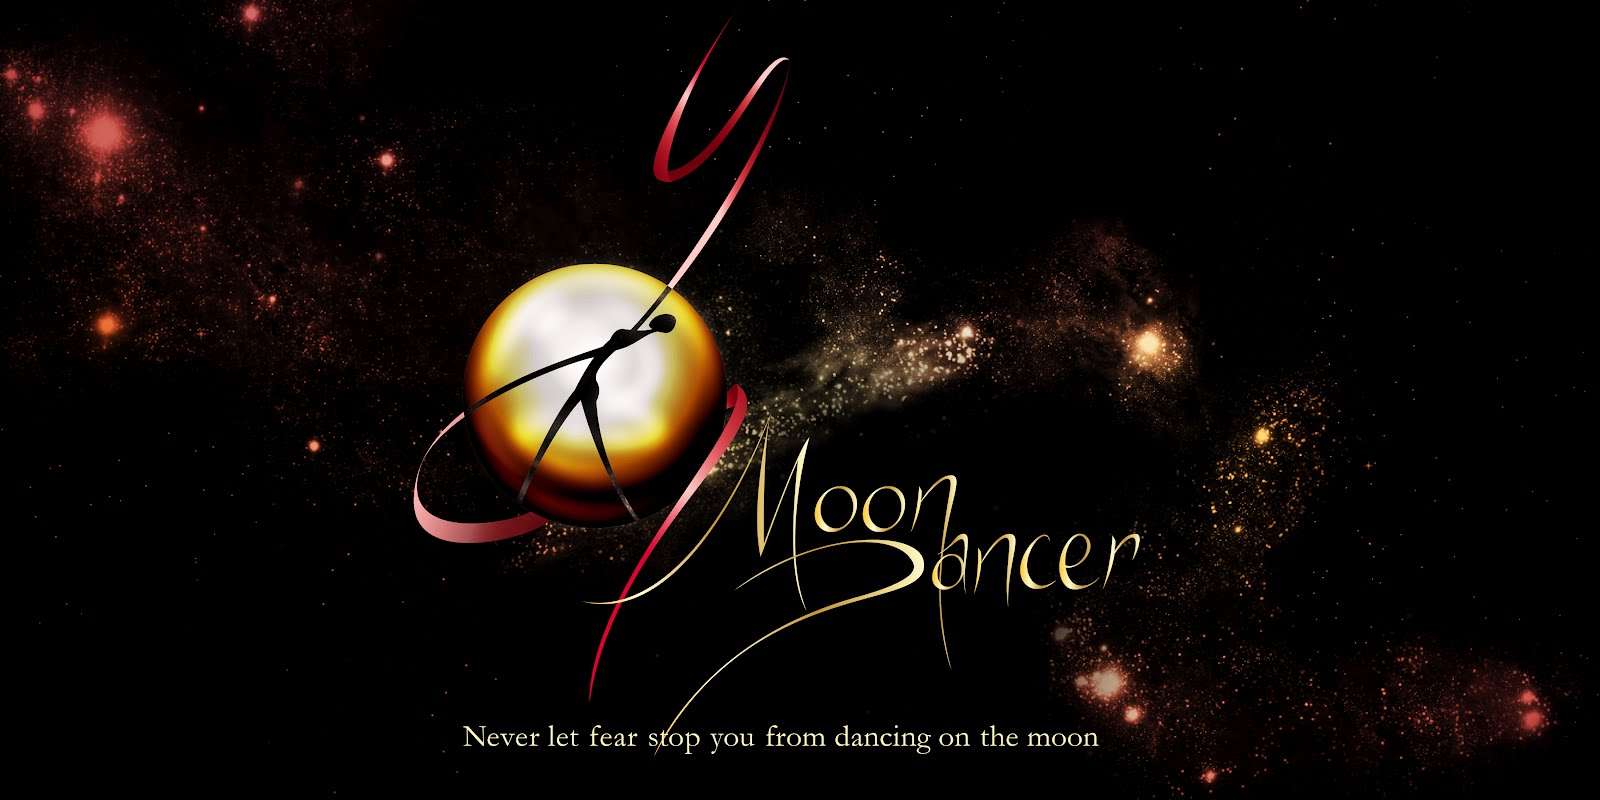 The Moondancer